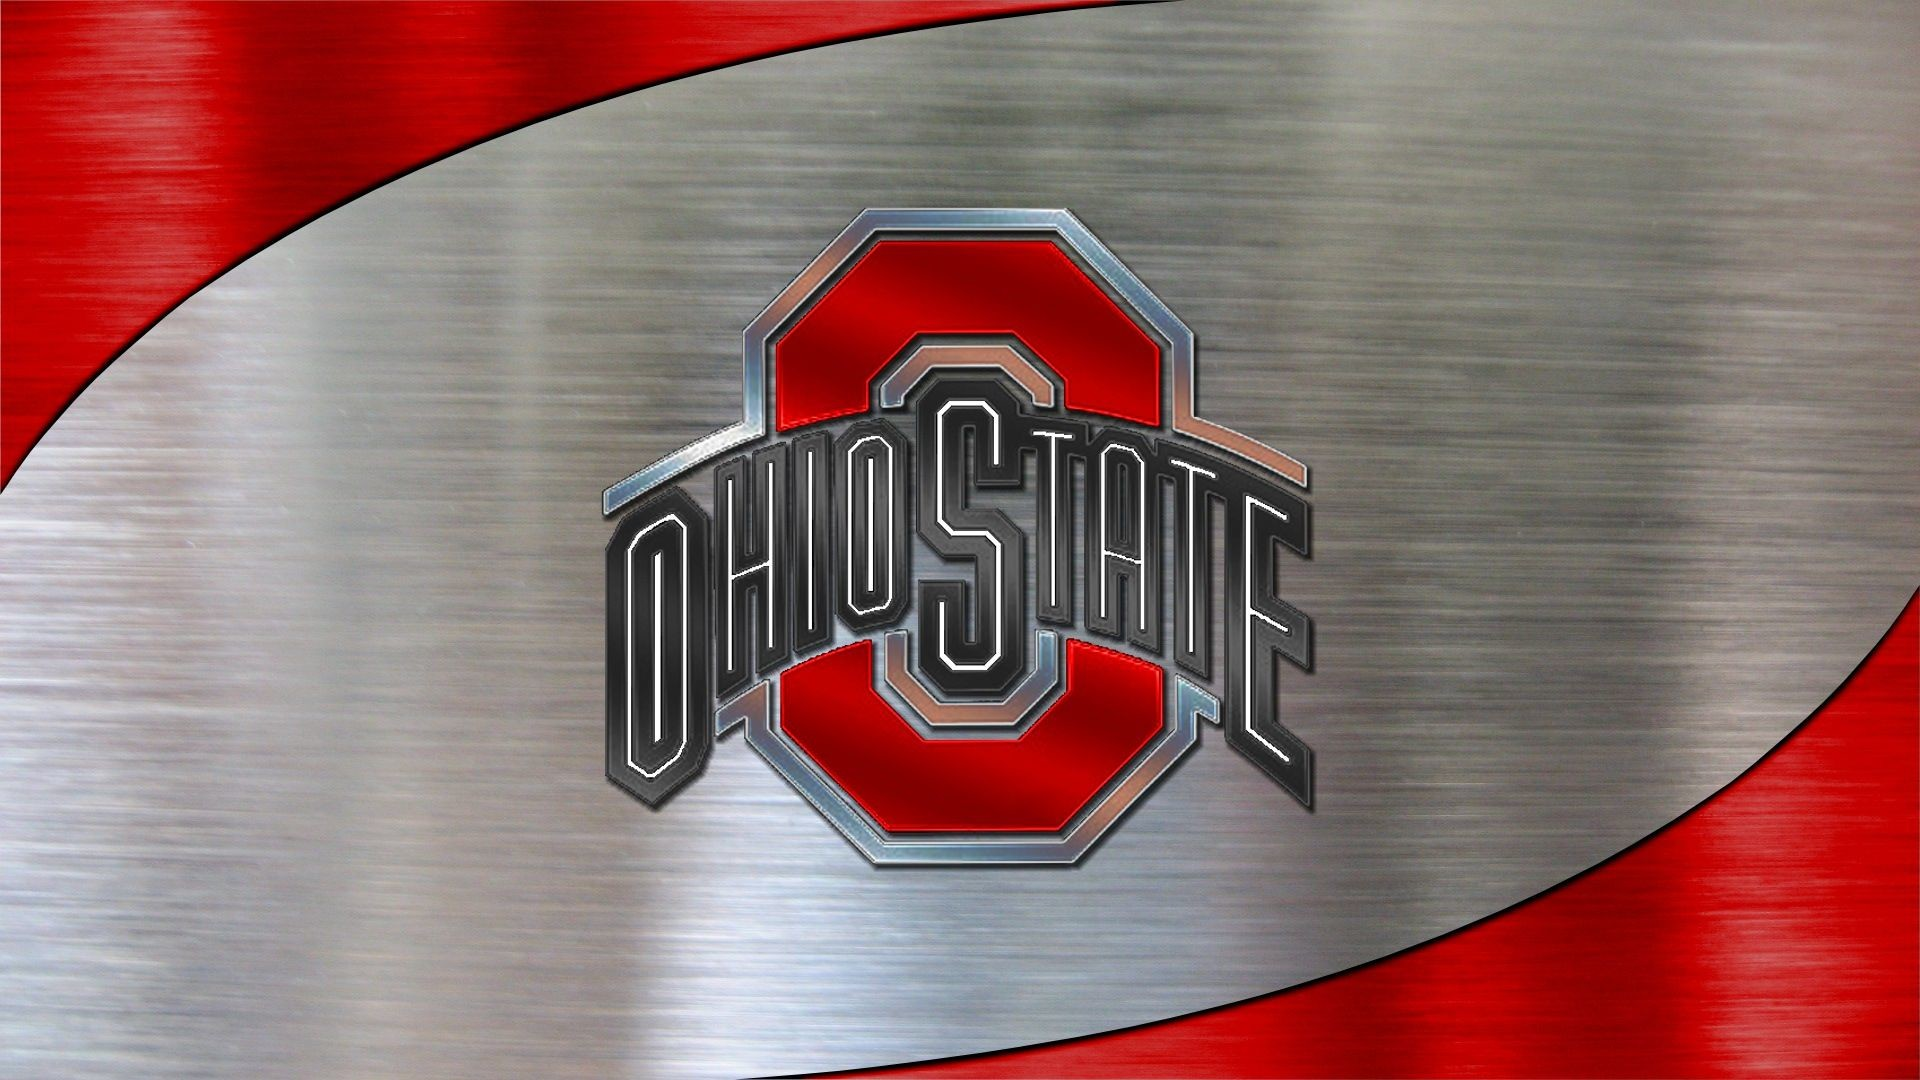 1920x1080 Ohio State Football Wallpaper Pixels Talk 1024×768 Ohio State Backgrounds  (45 Wallpapers)